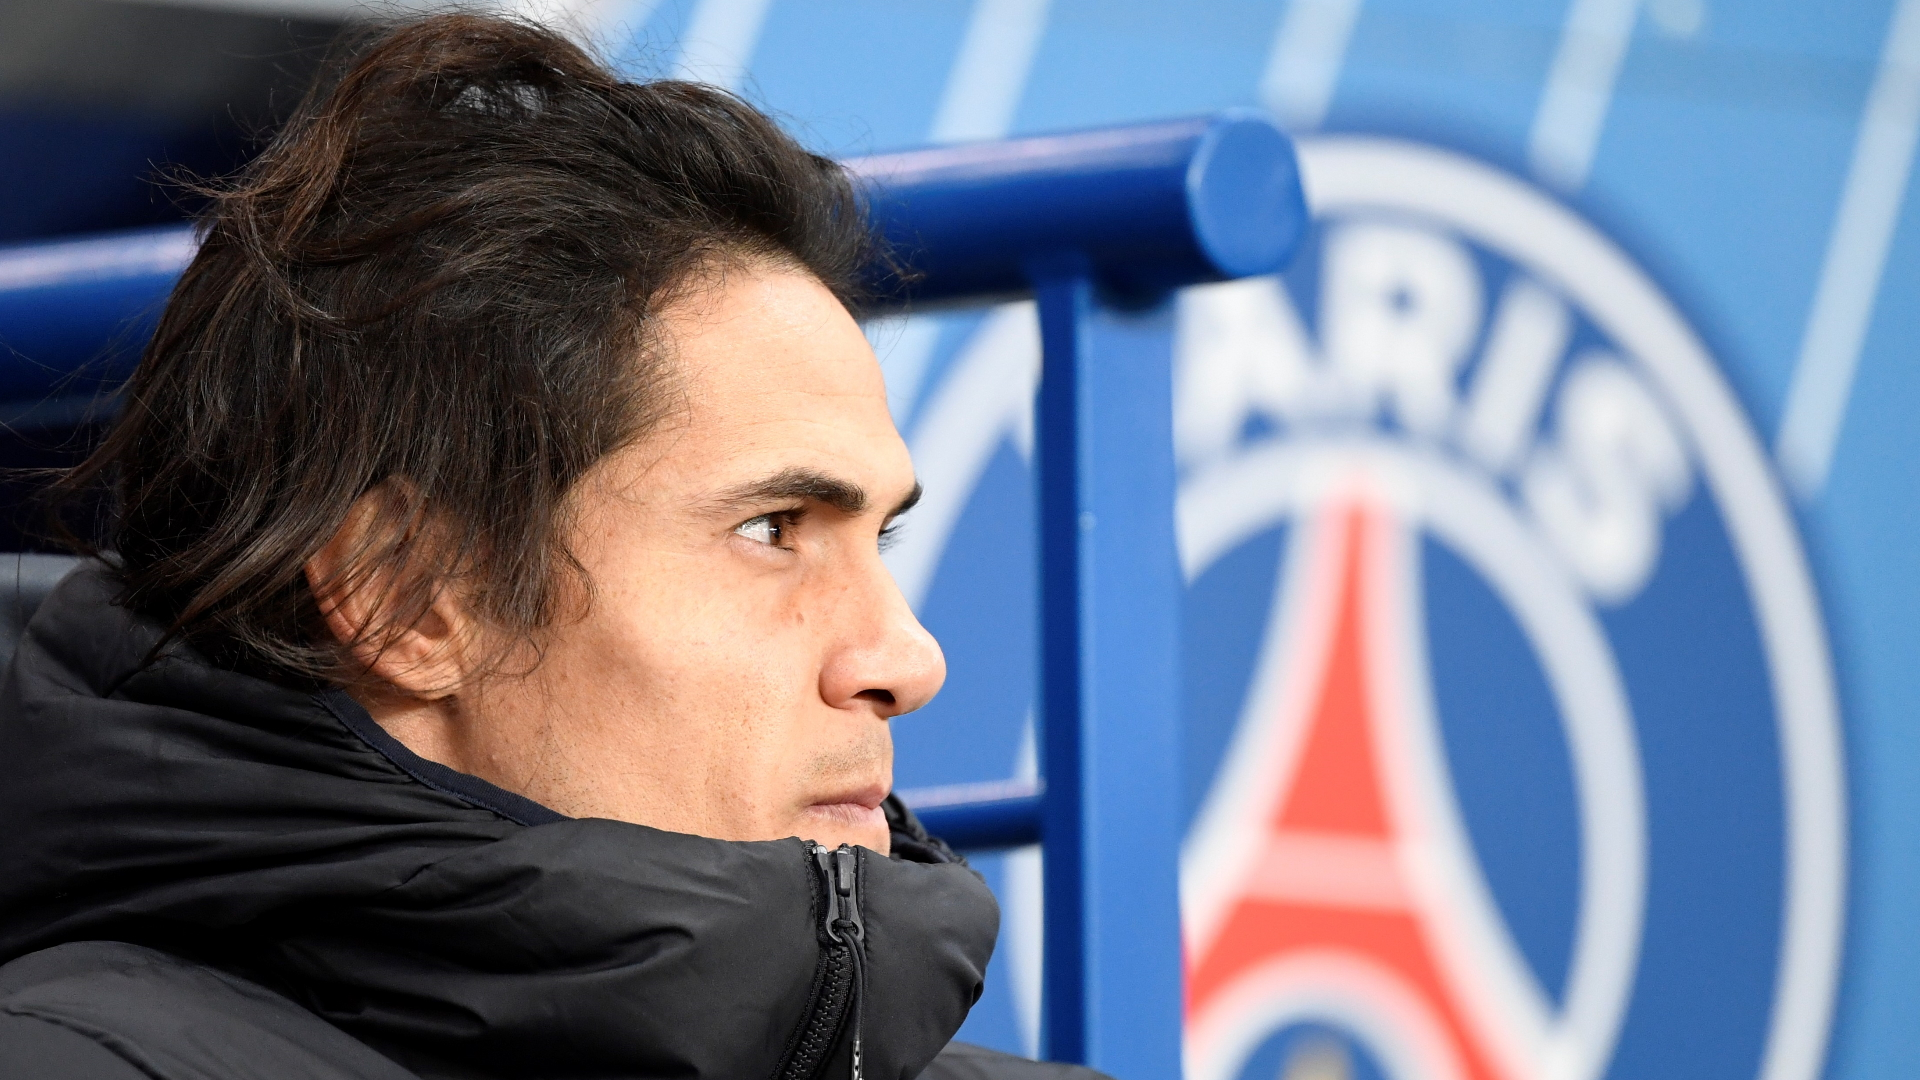 No Manchester United offer for Cavani as former PSG striker's search for a new club goes on